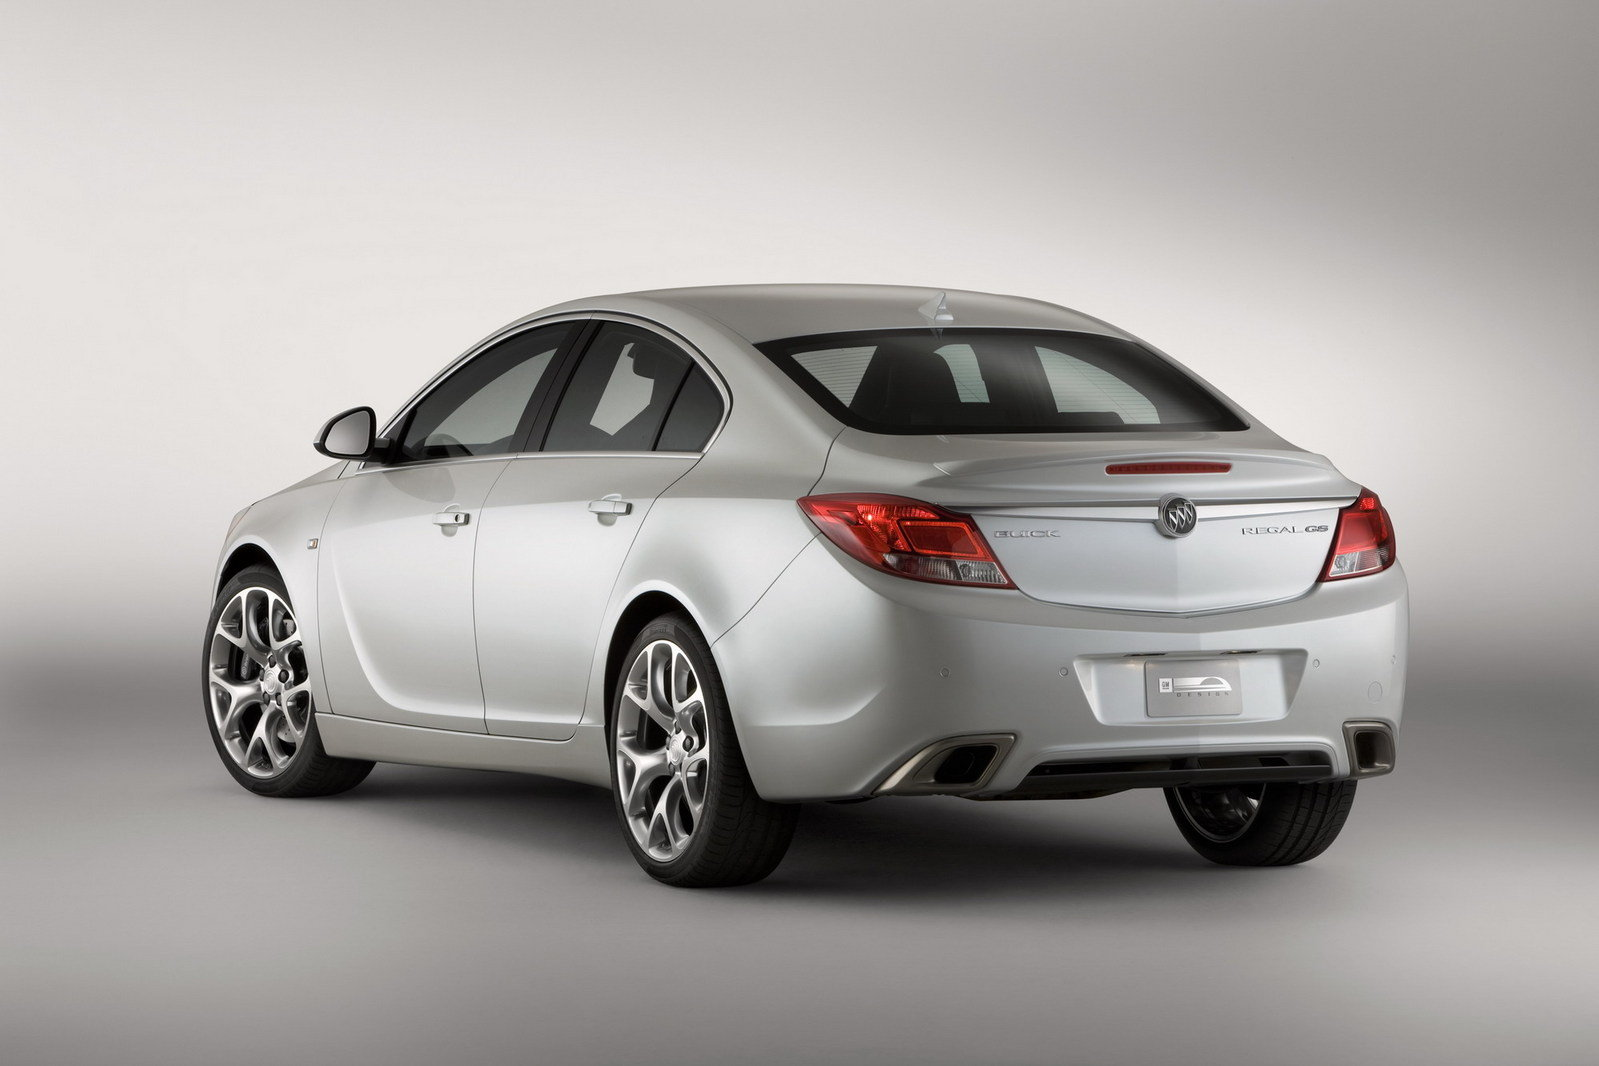 2010 buick regal gs concept picture 341070 car review. Cars Review. Best American Auto & Cars Review